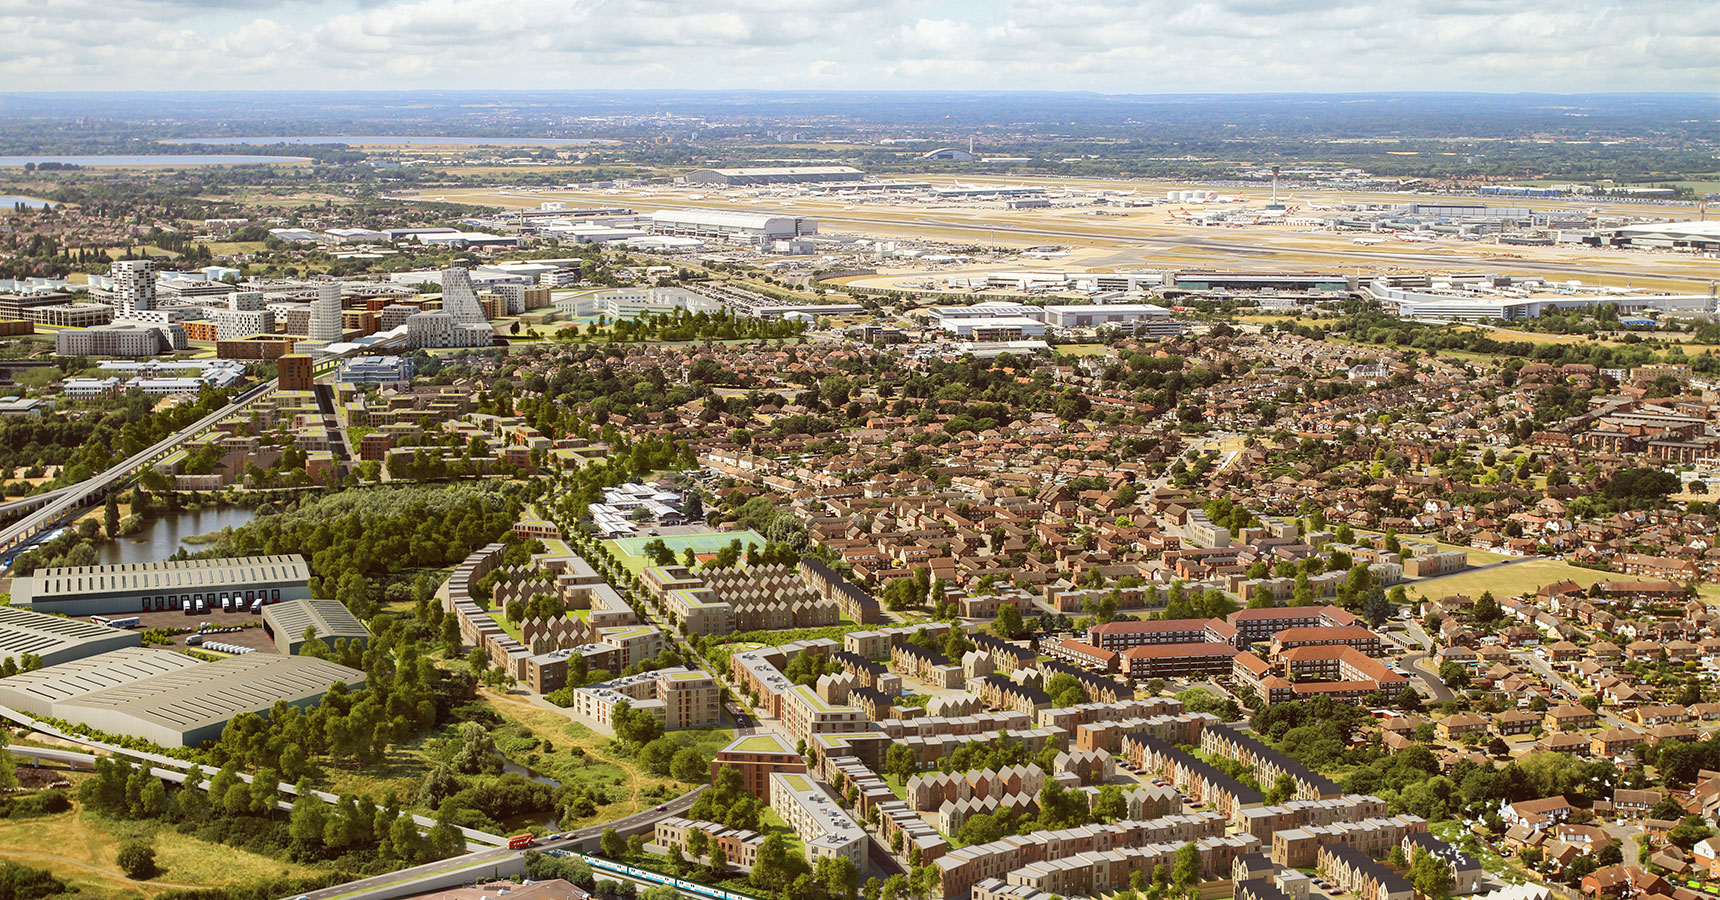 //uistudio.co.uk/wp-content/uploads/2015/11/4094_West-of-Borouogh_Aerial-view-Bedfont_1720x900.jpg